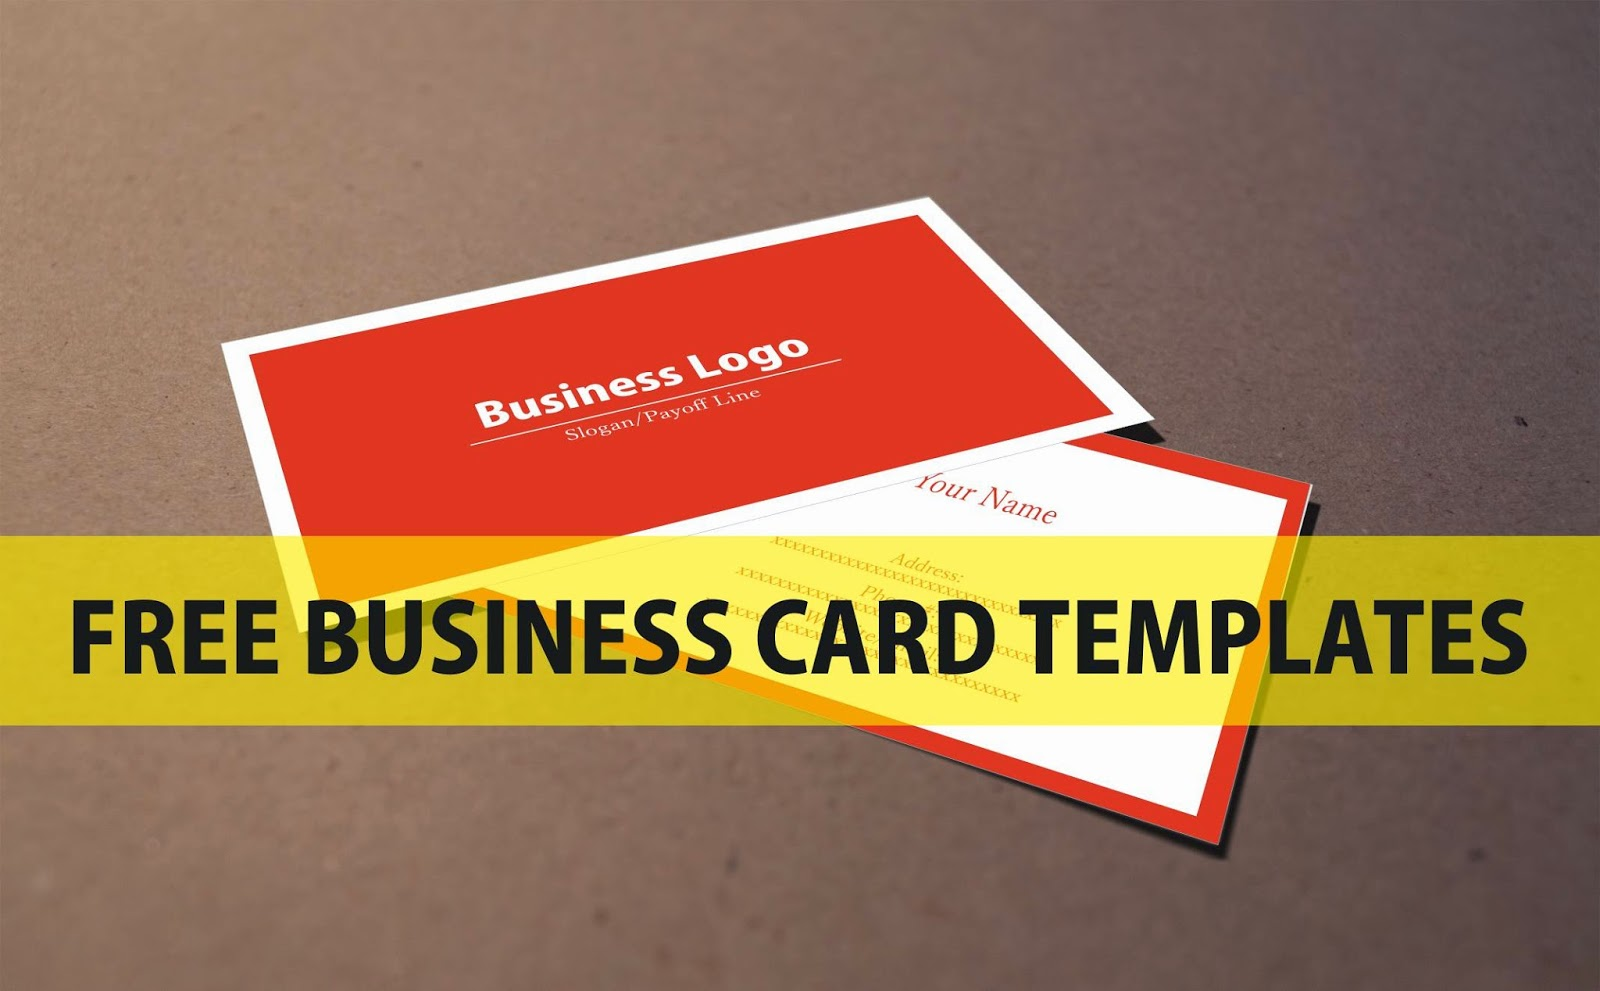 Free business card template download coreldraw file a graphic free business card template download coreldraw file friedricerecipe Images